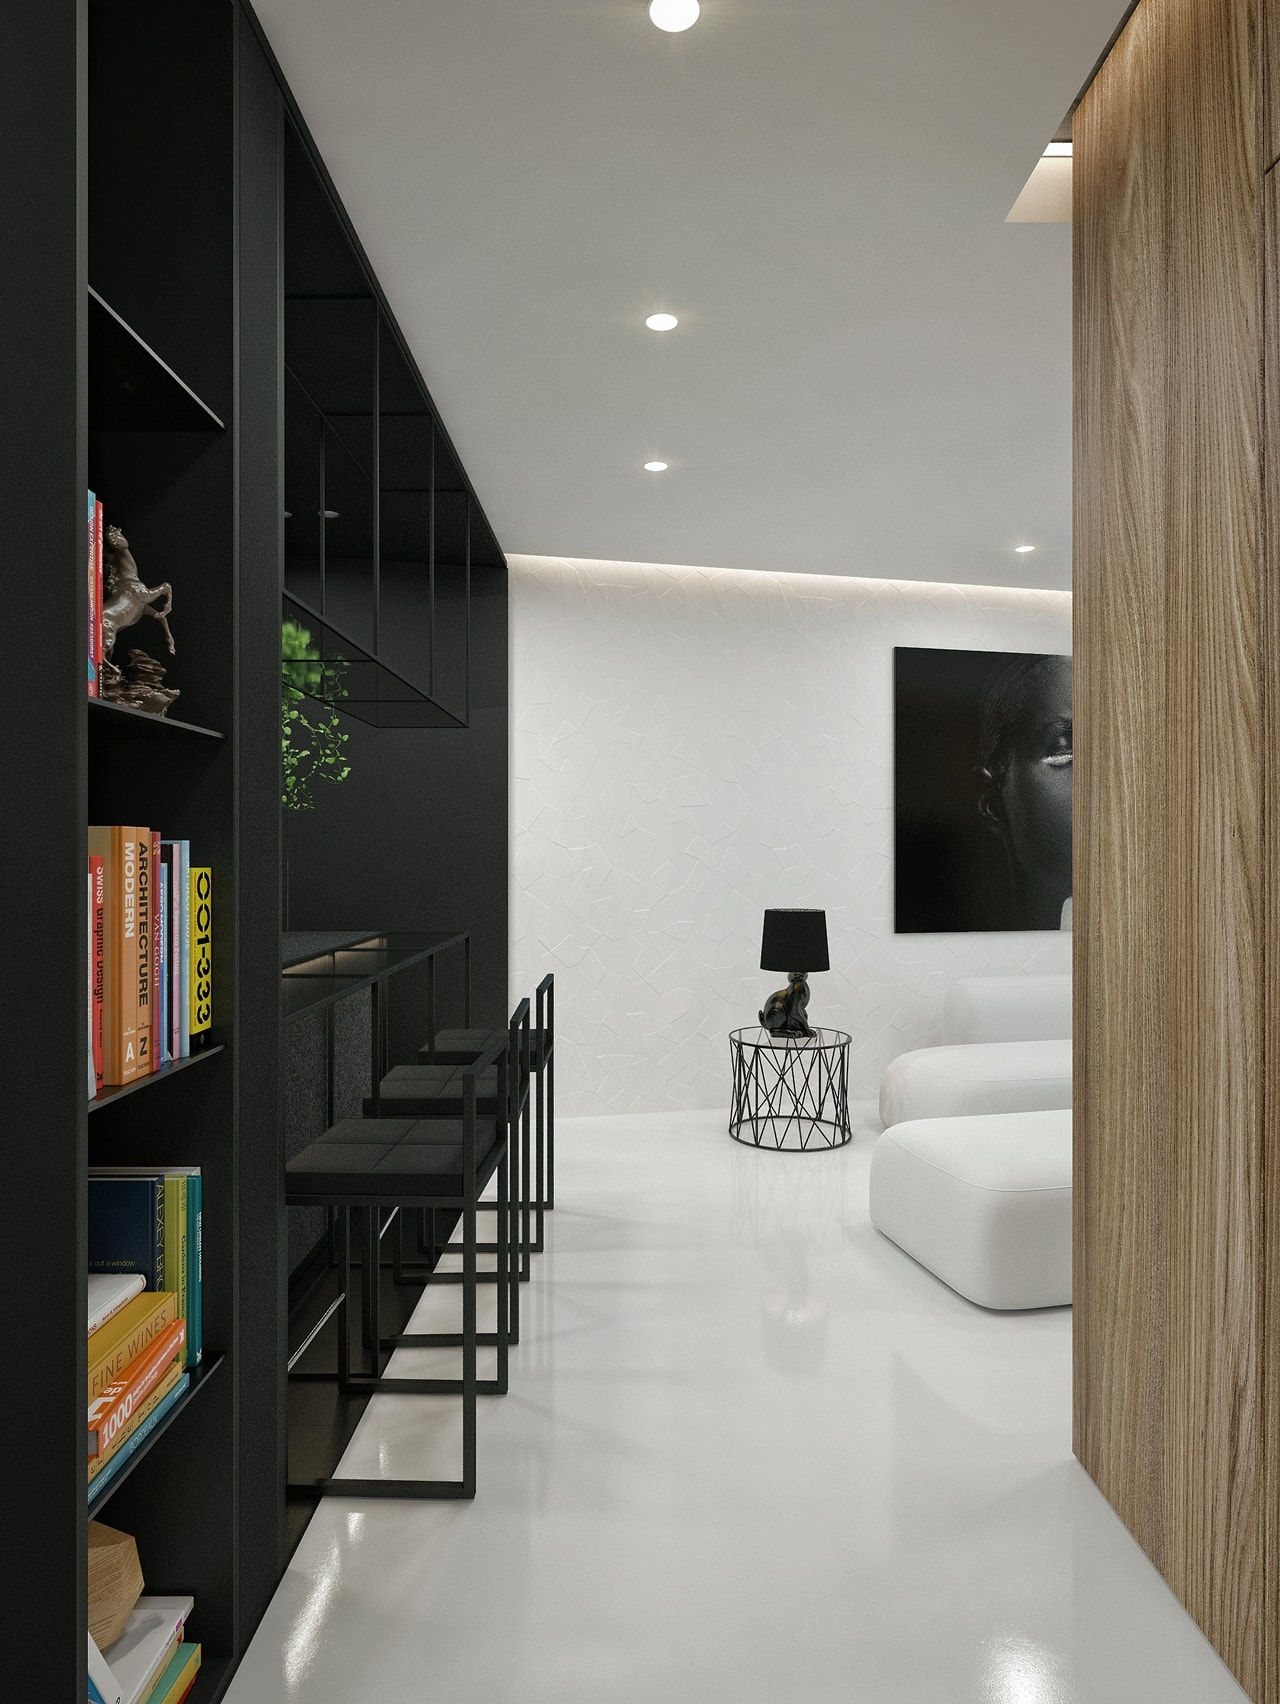 Black and white interior design ideas modern apartment by id white architecture beast - Any design using black and white ...